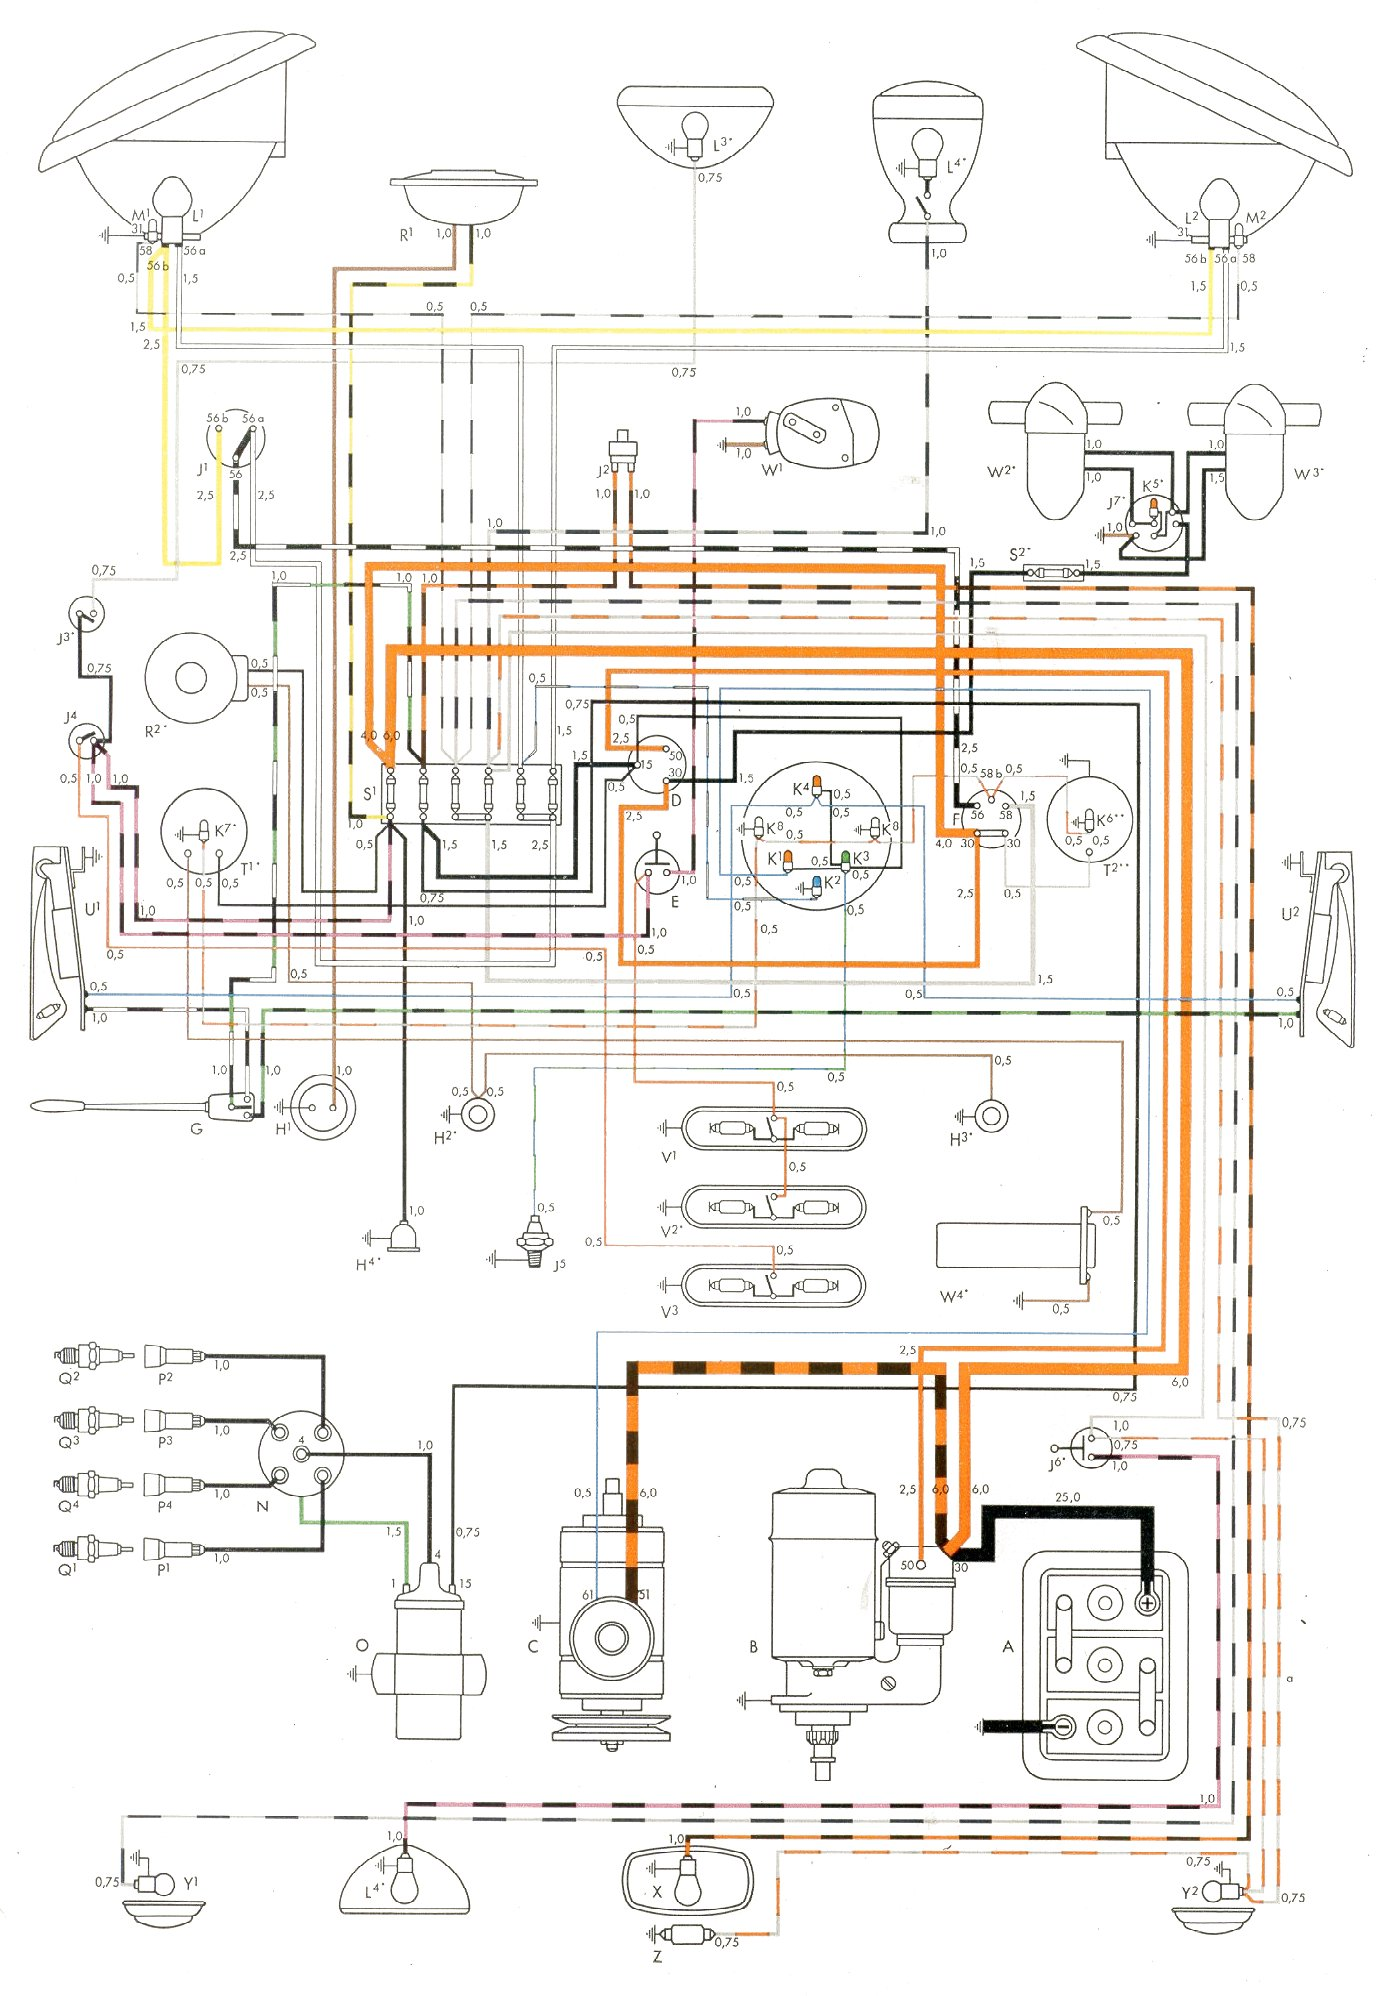 hight resolution of bird bus wiring diagrams on 2000 fl70 freightliner fuse box diagram